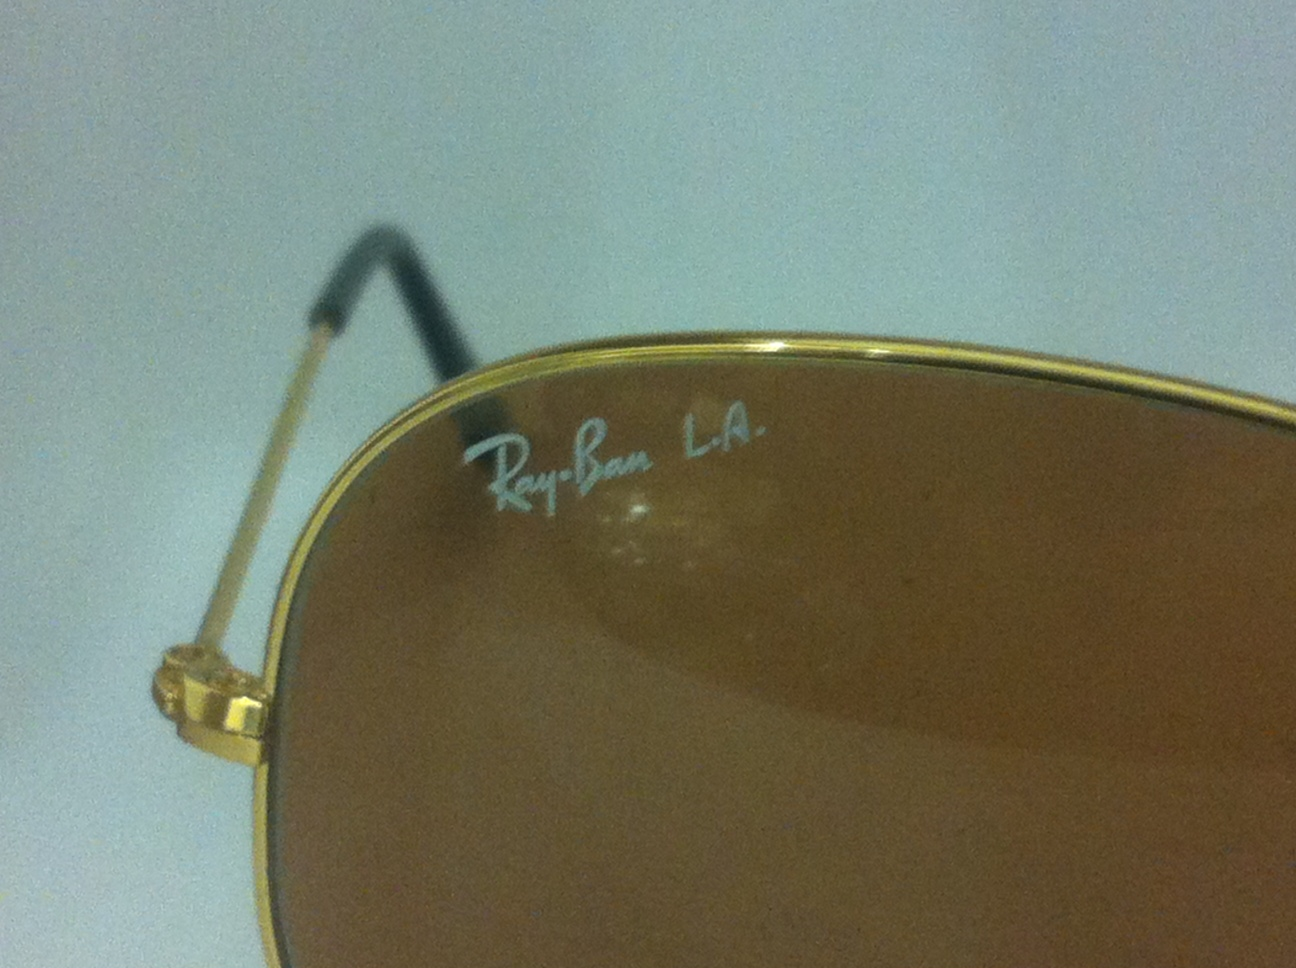 buy fake ray bans online  Lenskart.com RayBan Aviator Fake or Real??? You Decide!: Rayban ...